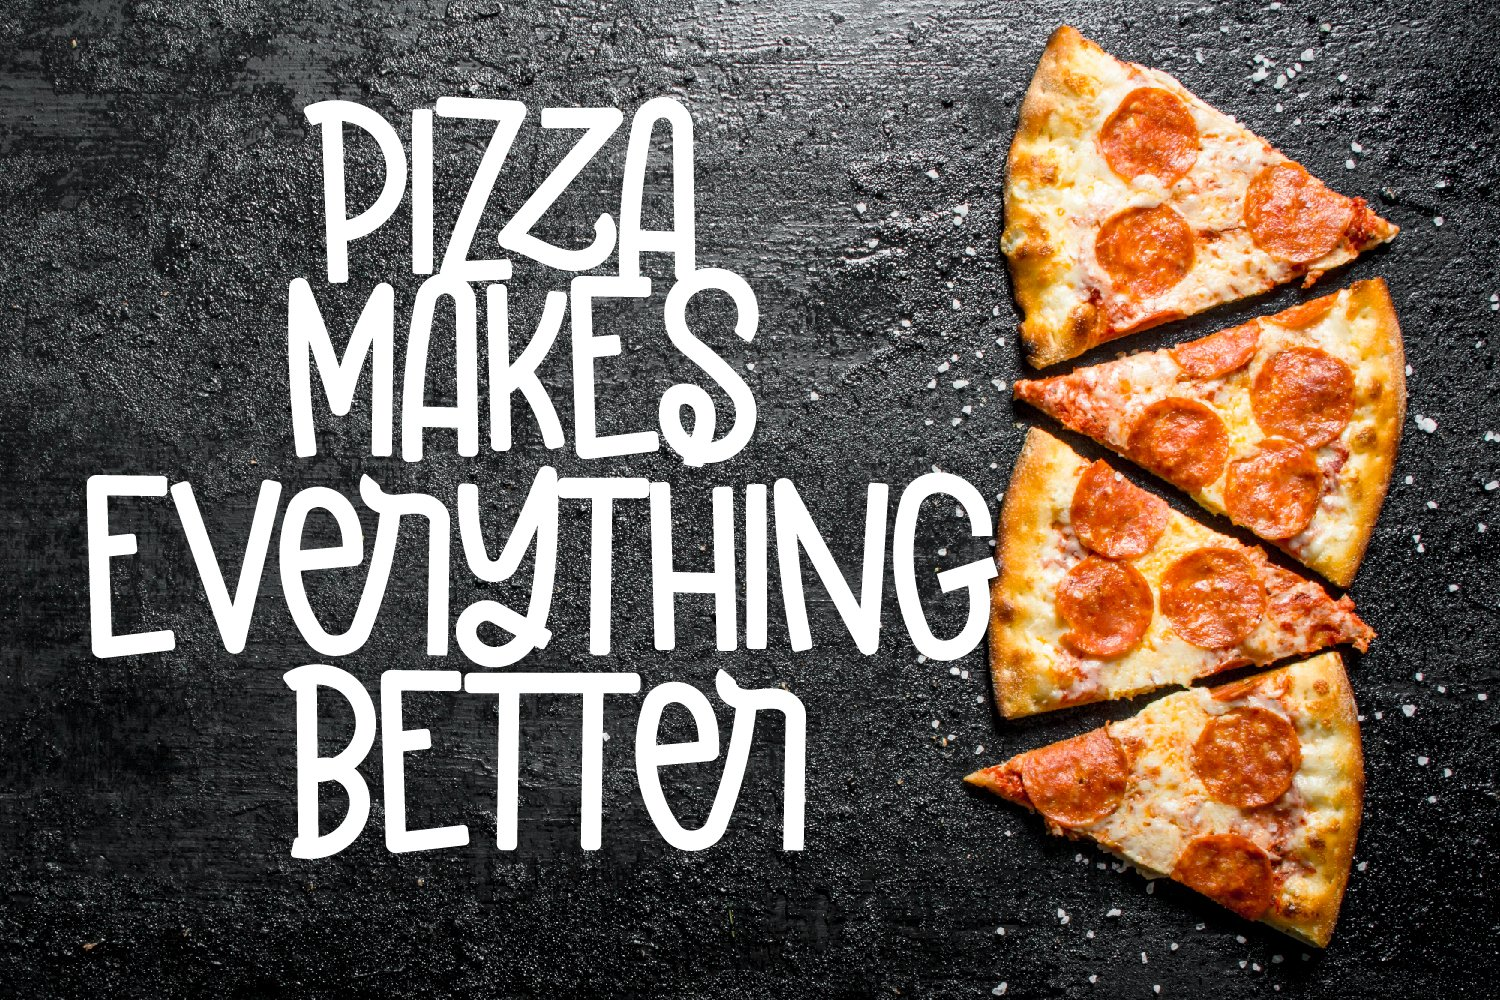 Pizzarony - A Silly Sans Serif With Ligatures example image 5